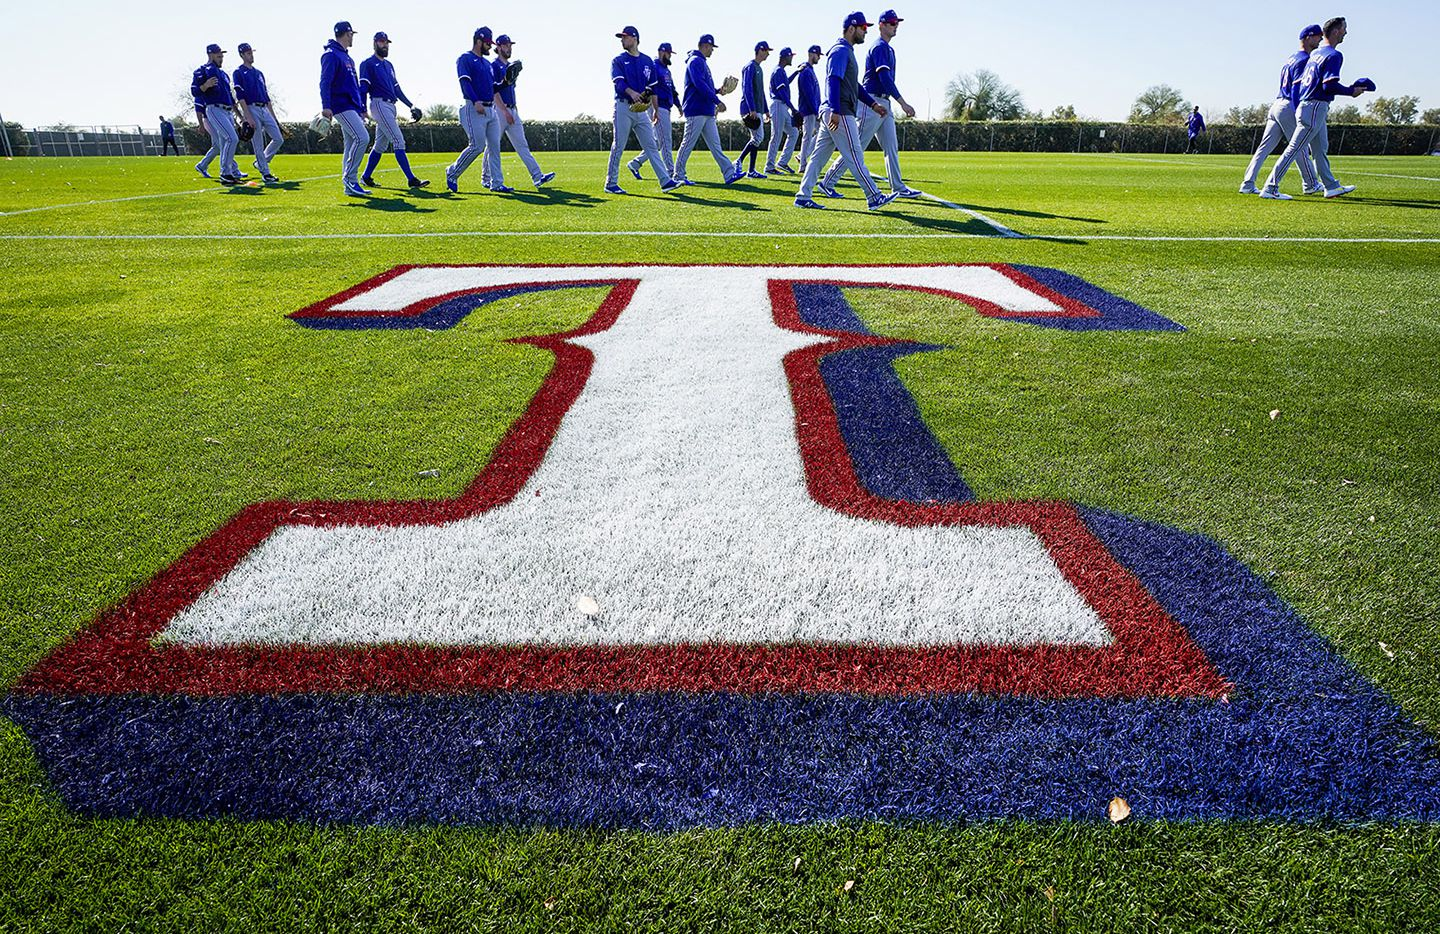 Texas Rangers players head to their first drills during the first spring training workout for pitchers and catchers at the team's training facility on Wednesday, Feb. 12, 2020, in Surprise, Ariz.